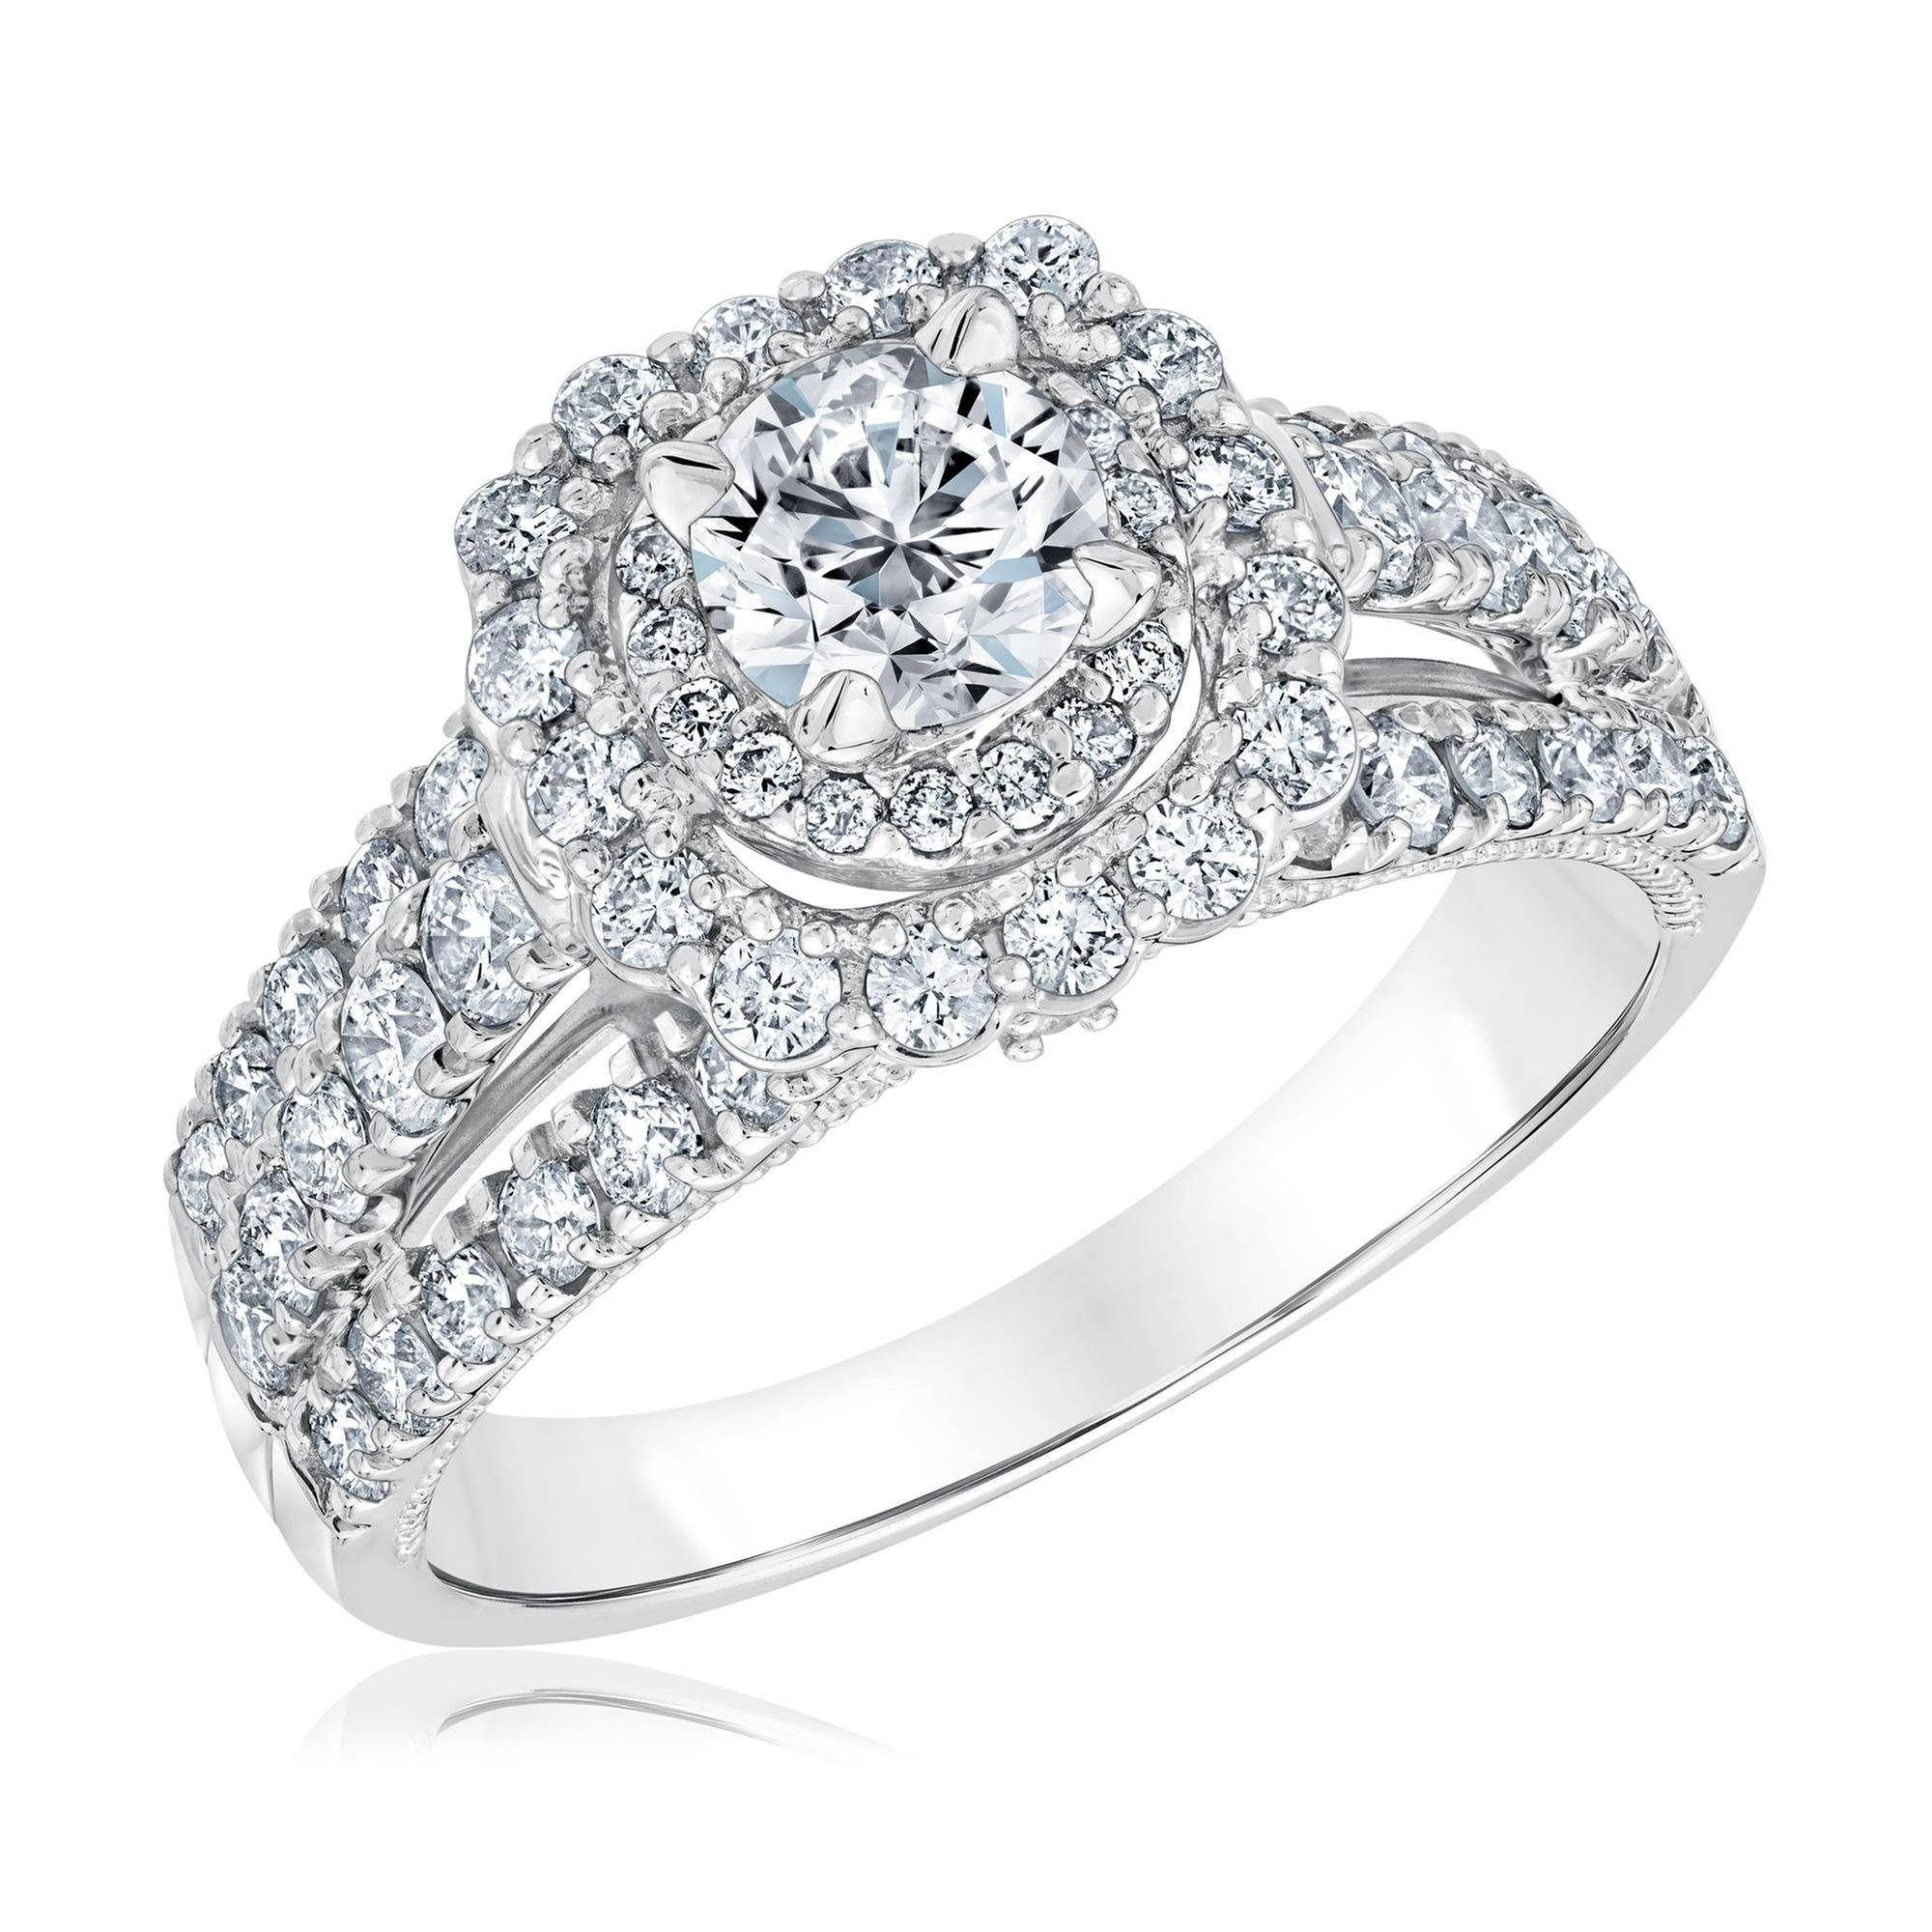 Rings Page 1 | Reeds Jewelers Pertaining To Most Current 5 Diamond Anniversary Rings (View 6 of 25)